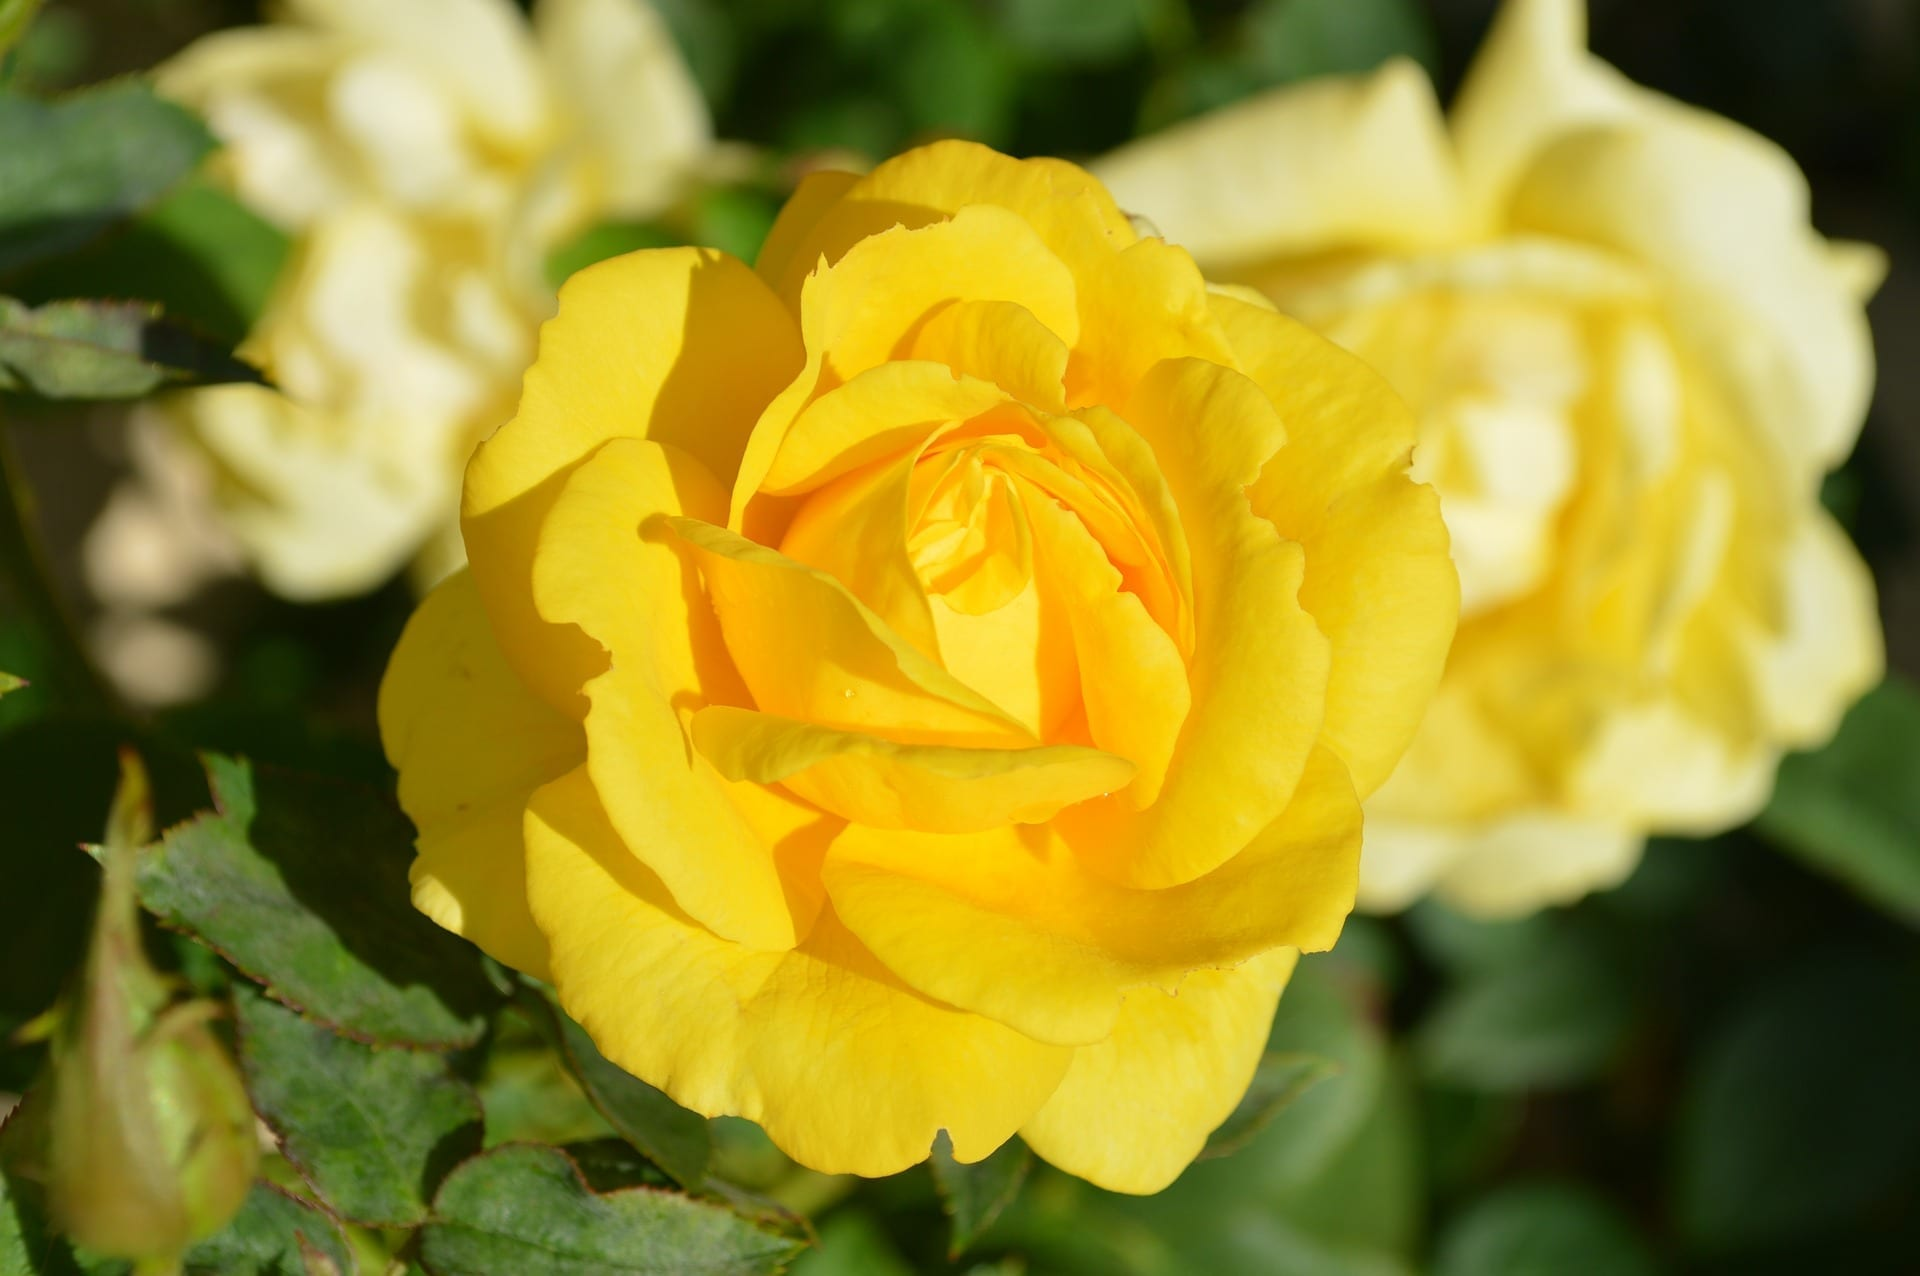 Research Fund Receives $600,000 for Cut Flower Advancements